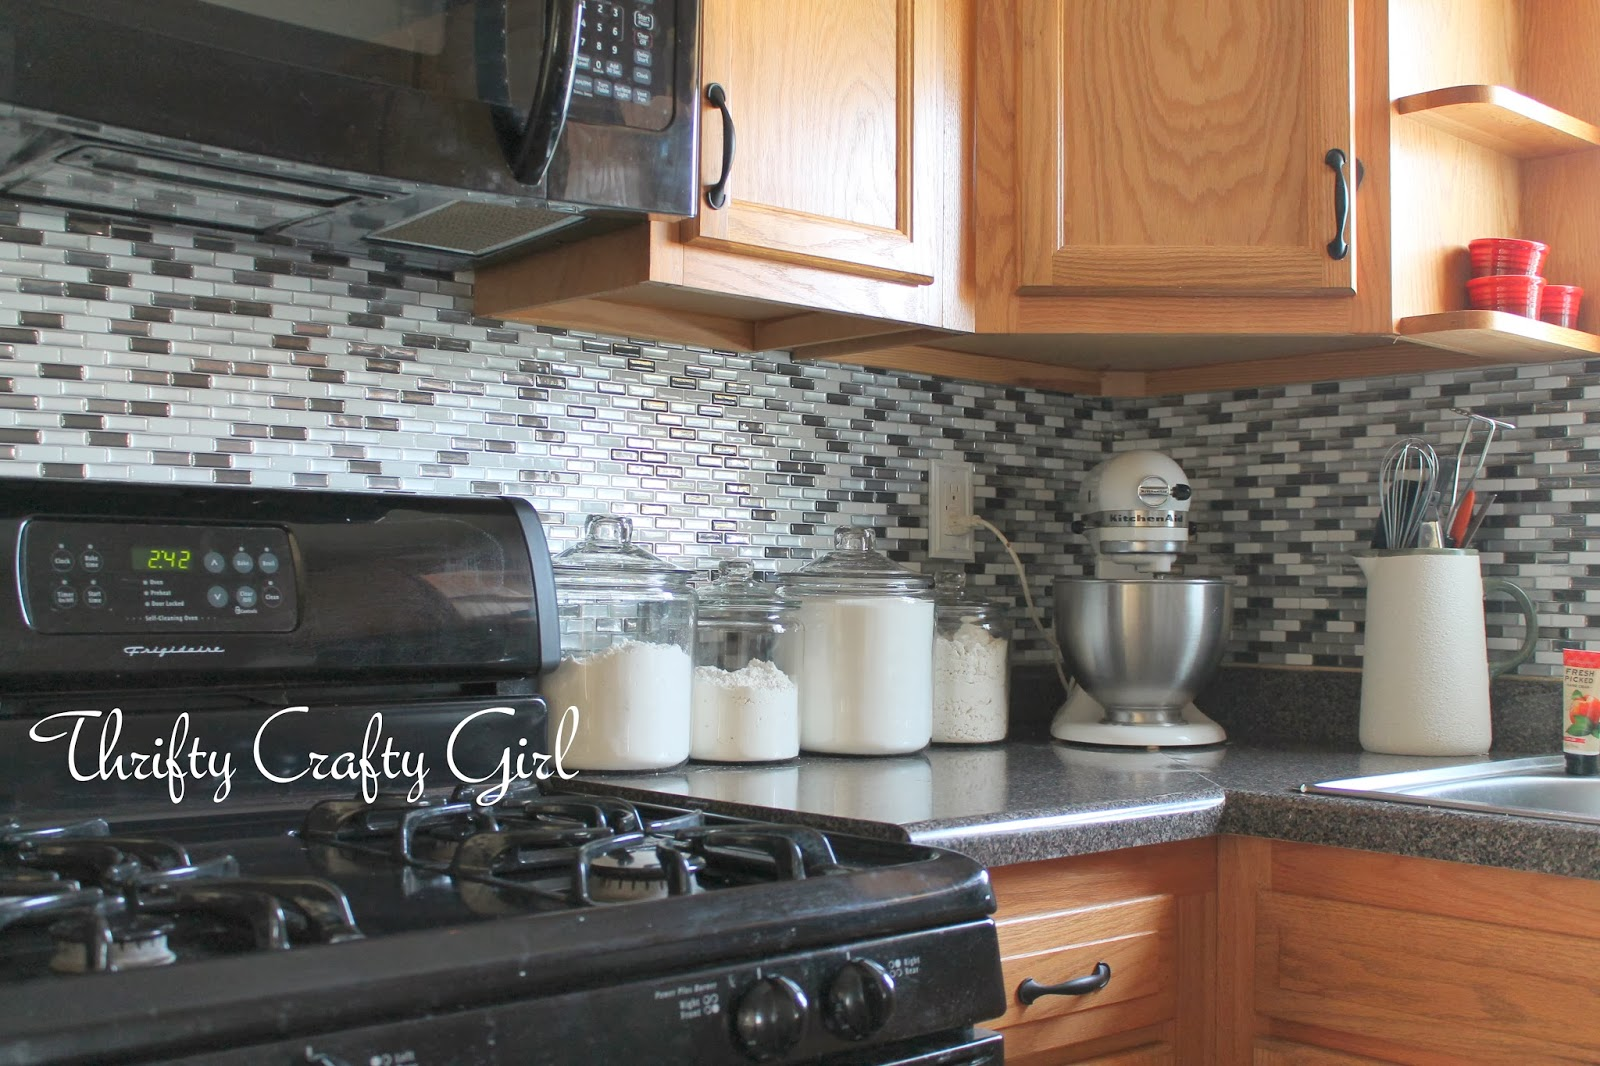 thrifty crafty girl: easy kitchen backsplash with smart tiles